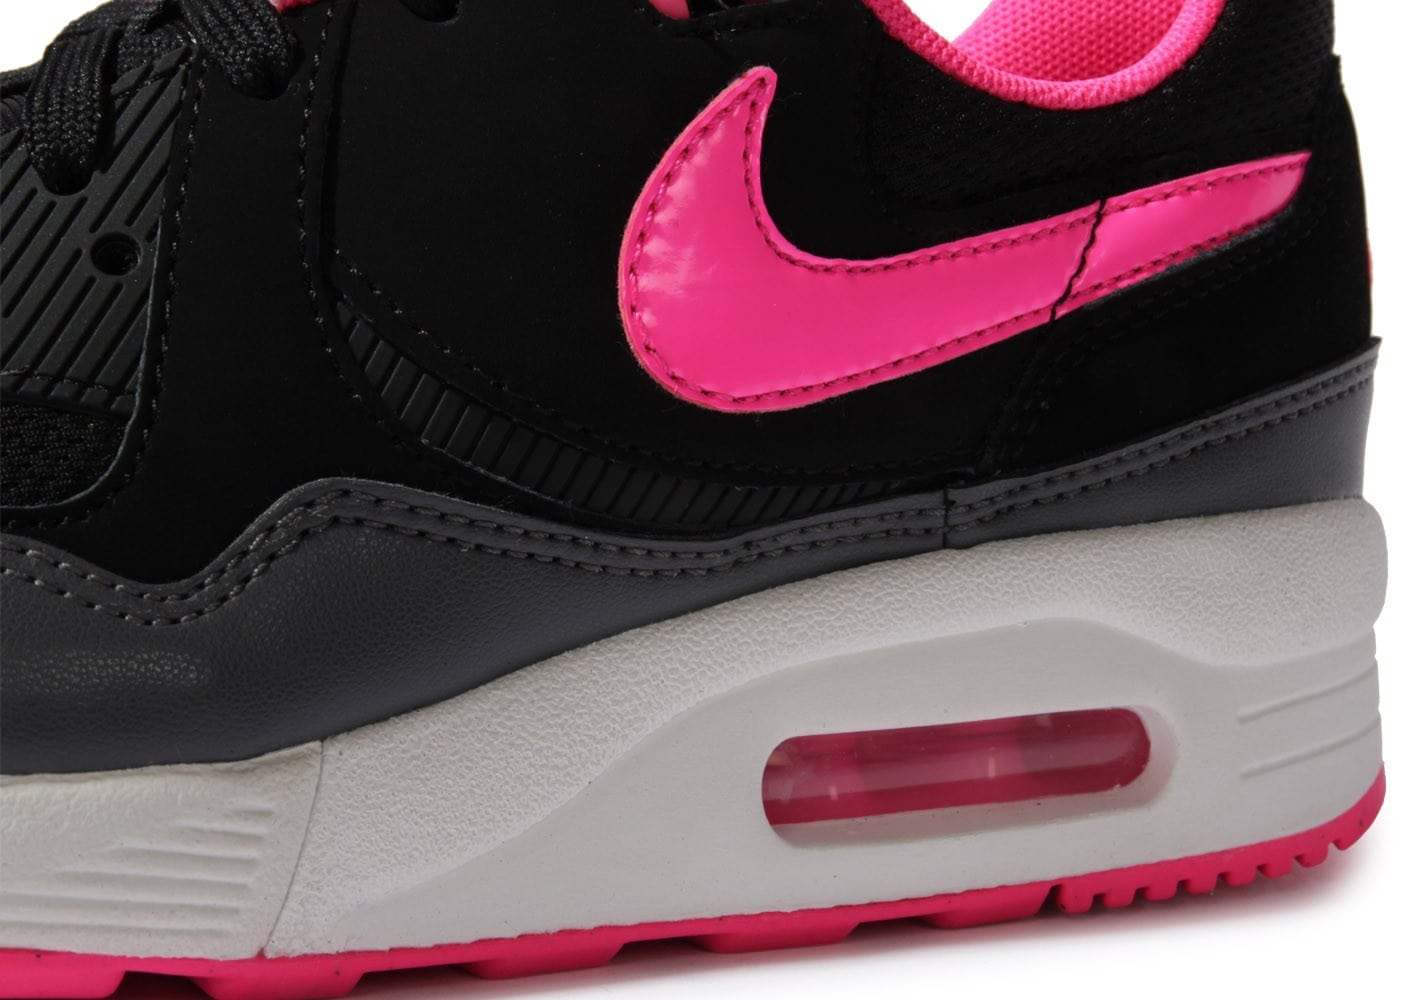 nike air max light noire et rose chaussures chaussures chausport. Black Bedroom Furniture Sets. Home Design Ideas